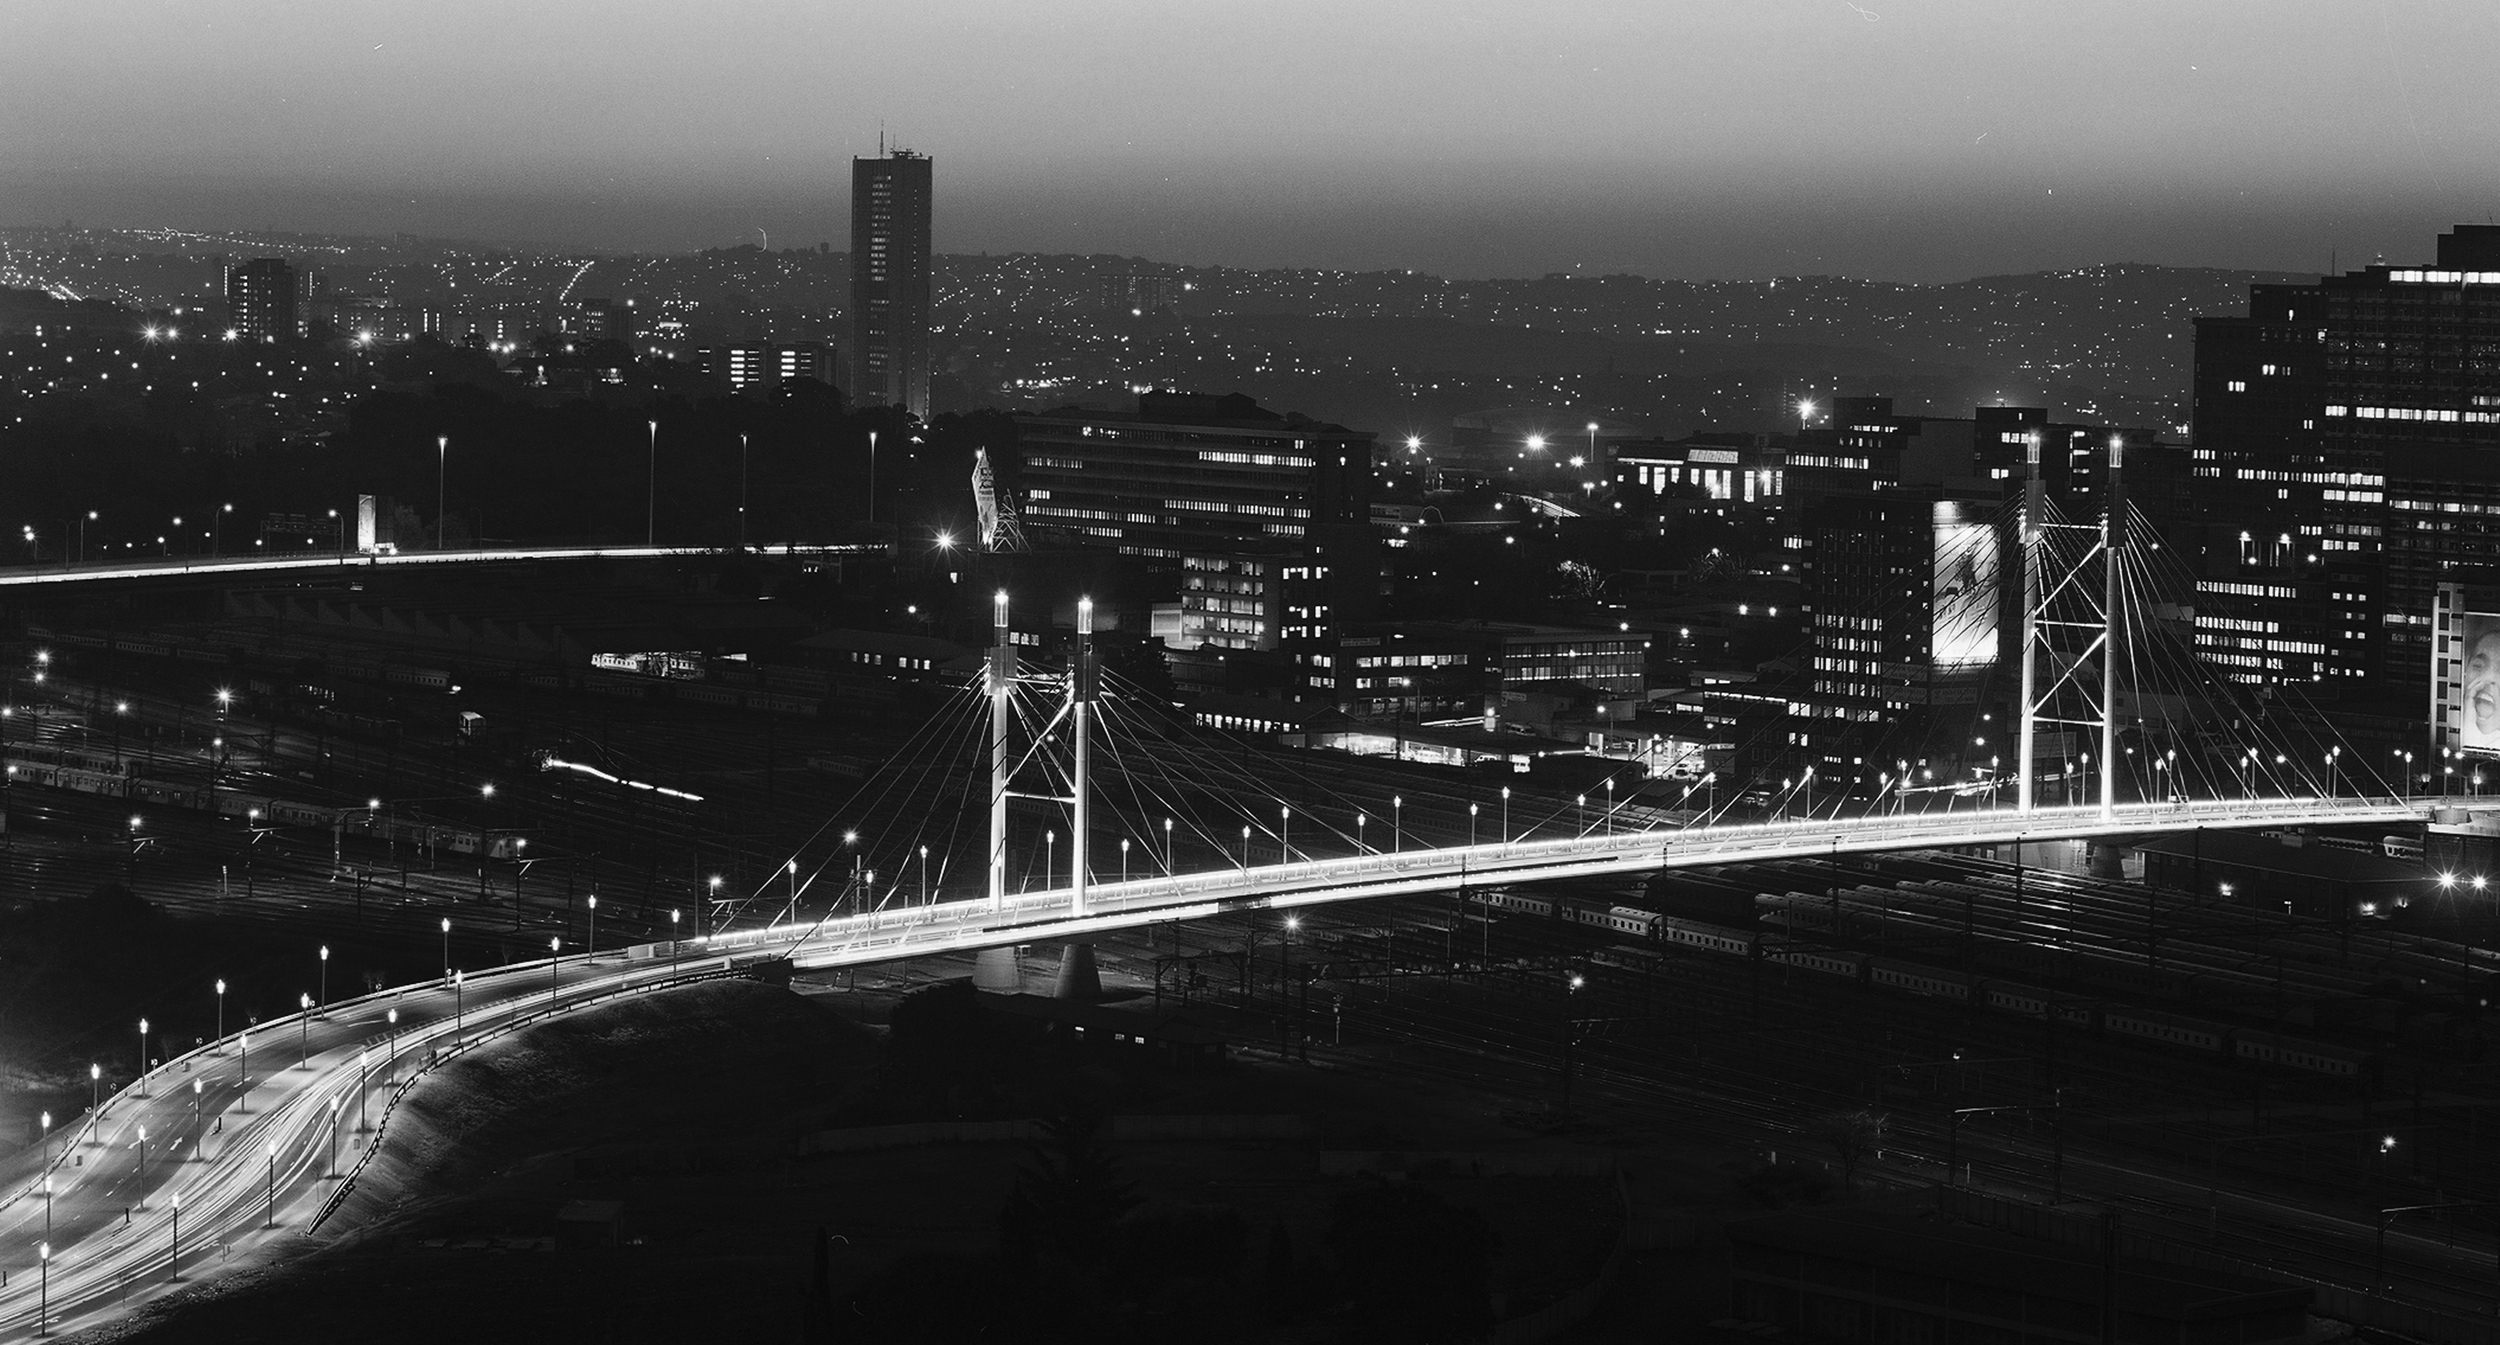 """Fulton Award, The Concrete Society of South Africa   2006    Nelson Mandela Bridge  was awarded the Fulton Award by The Concrete Society of Southern Africa in the category """"aesthetic attraction""""."""